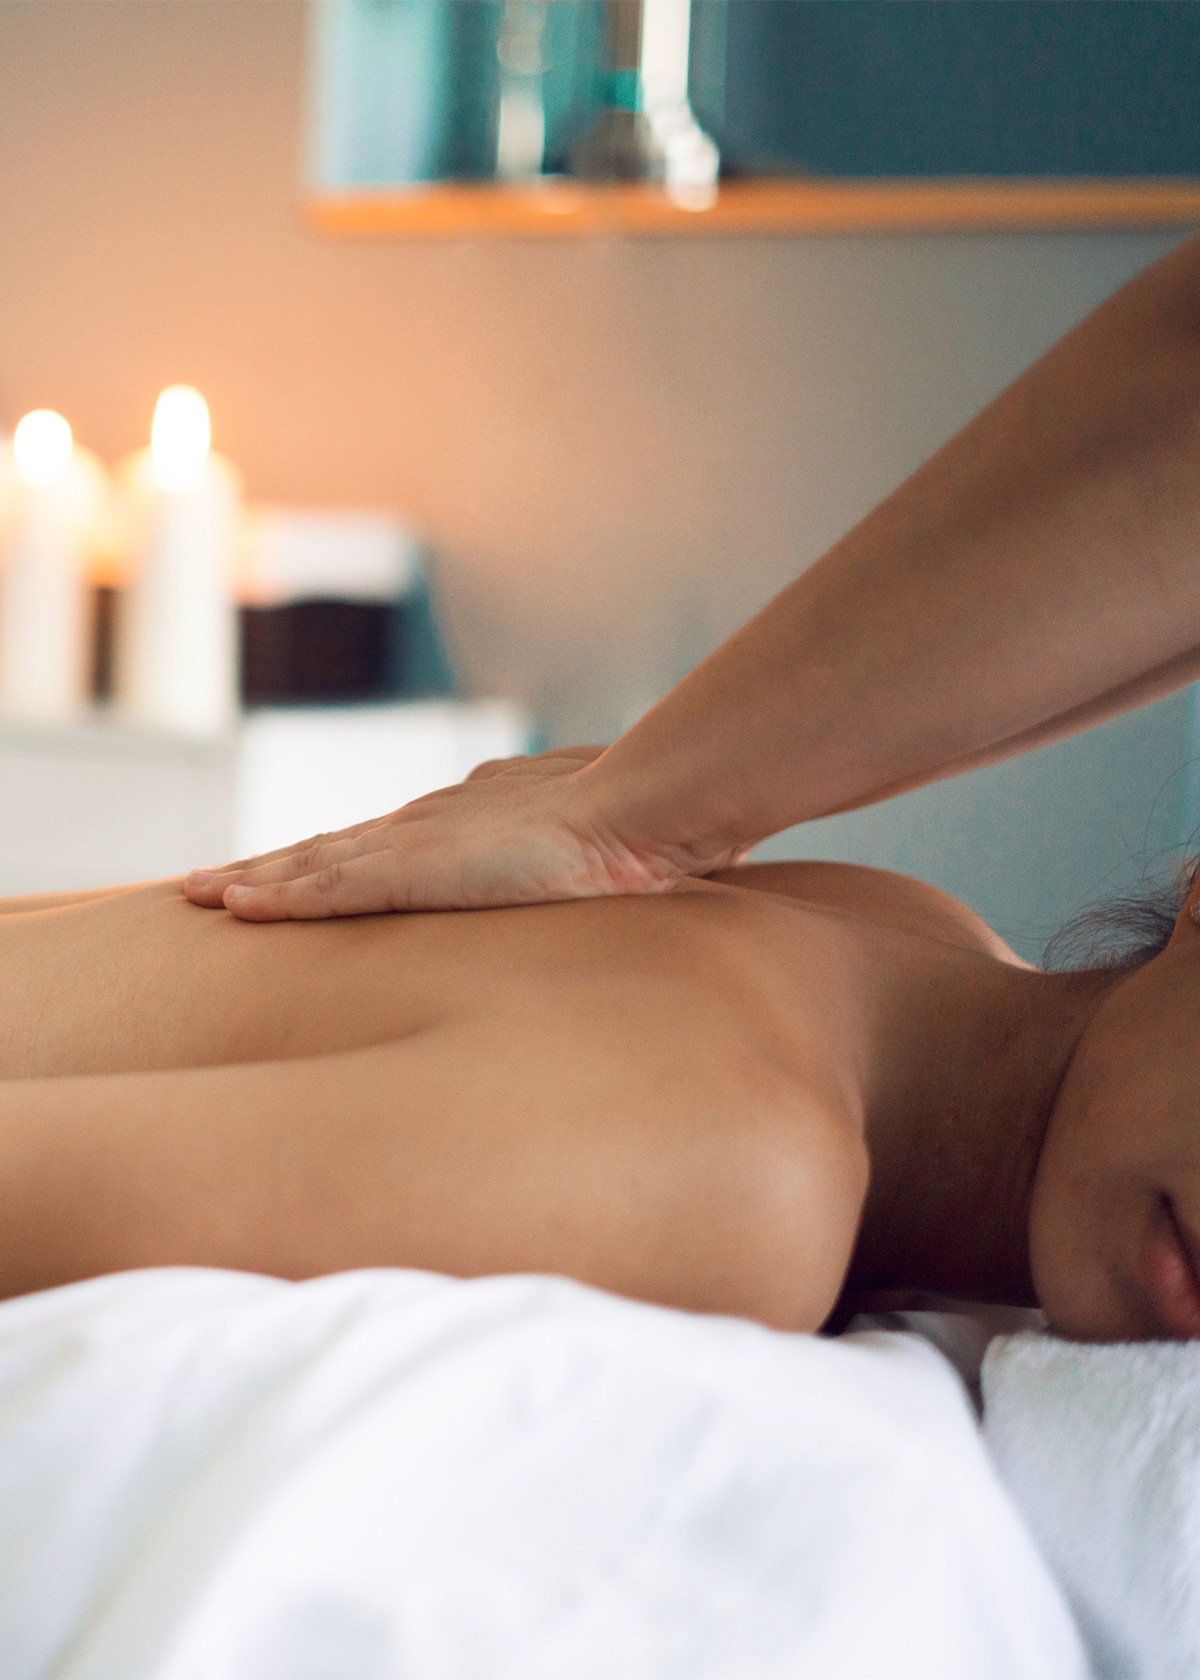 Benefits of Massage - Regular massage can decrease chronic pain, lower blood pressure and heart rate, relieve tired, aching muscles, reduce stress levels and more. Did we mention it feels amazing?If you're looking for a massage in Keller, look no further.